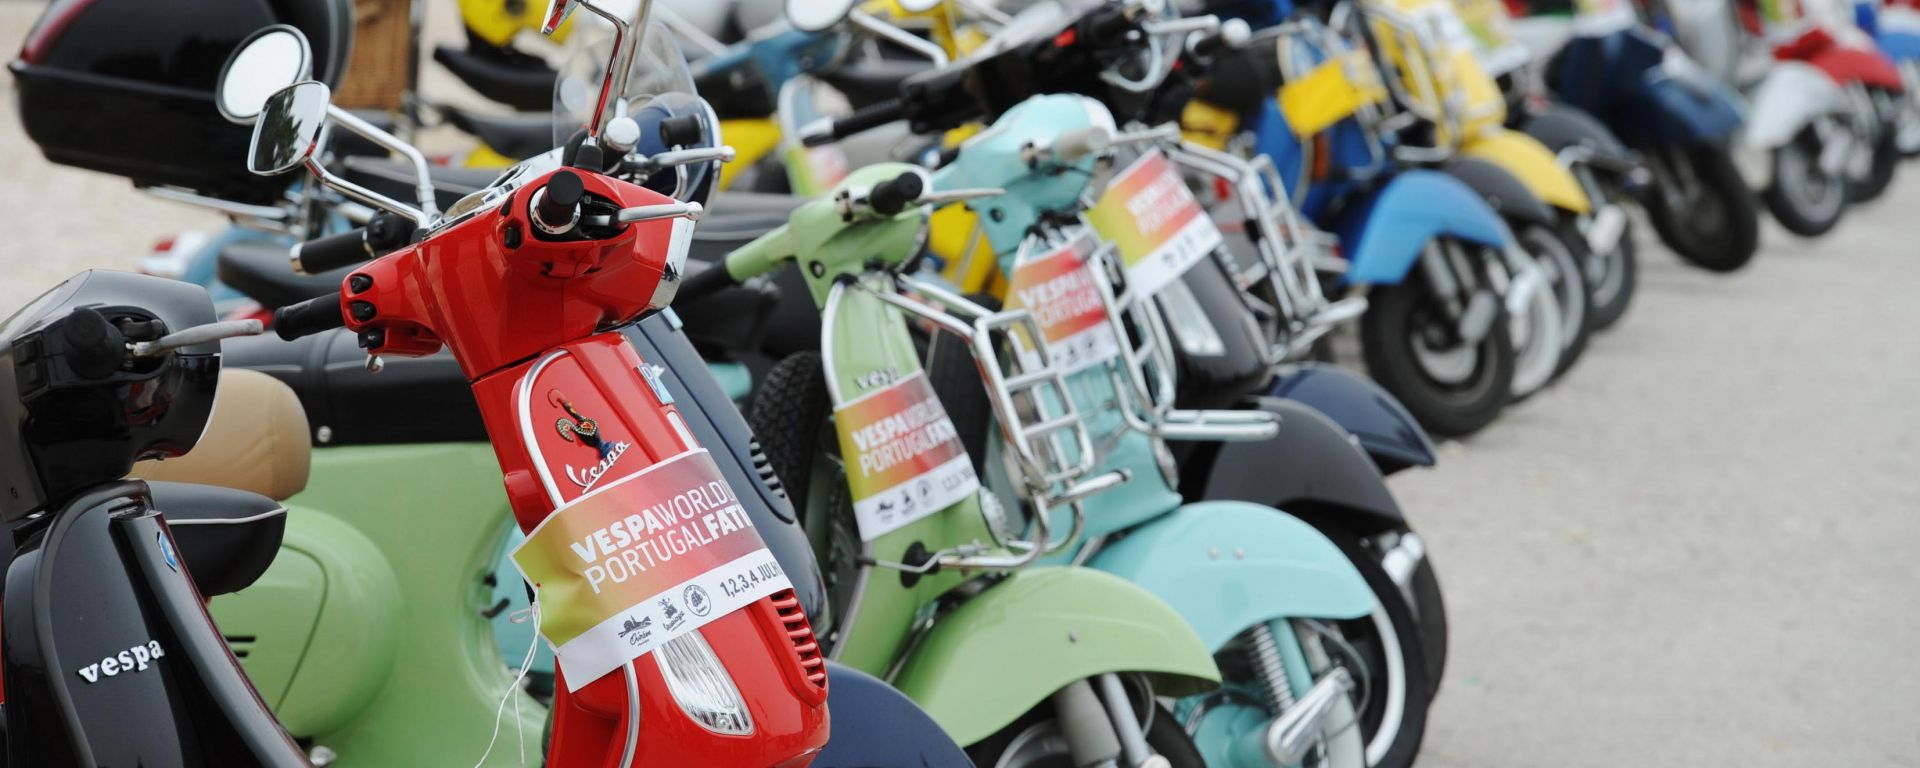 Vespa World Days in Norvegia